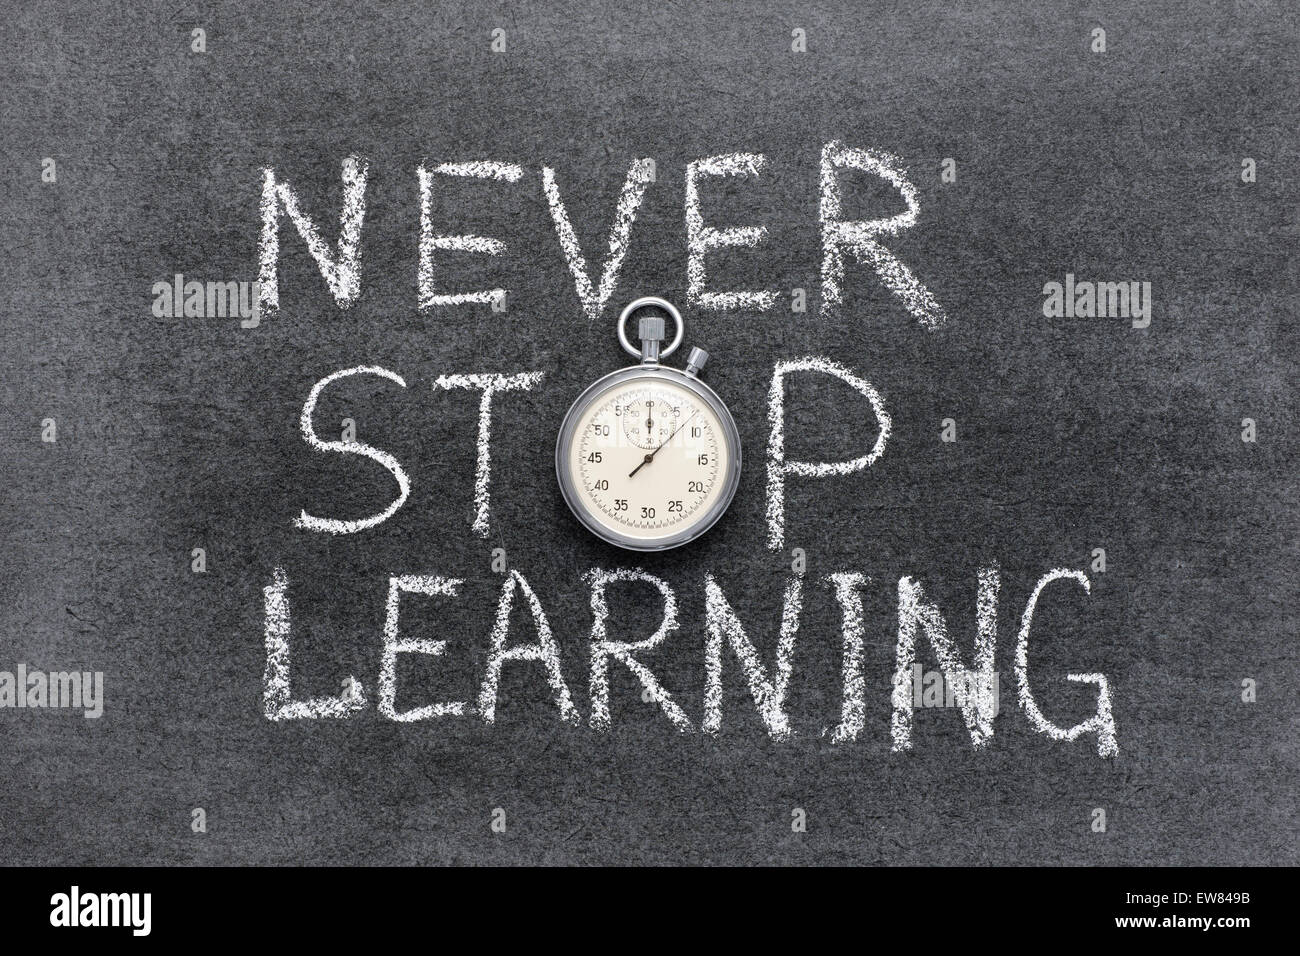 never stop learning phrase handwritten on chalkboard with vintage precise stopwatch used instead of O - Stock Image